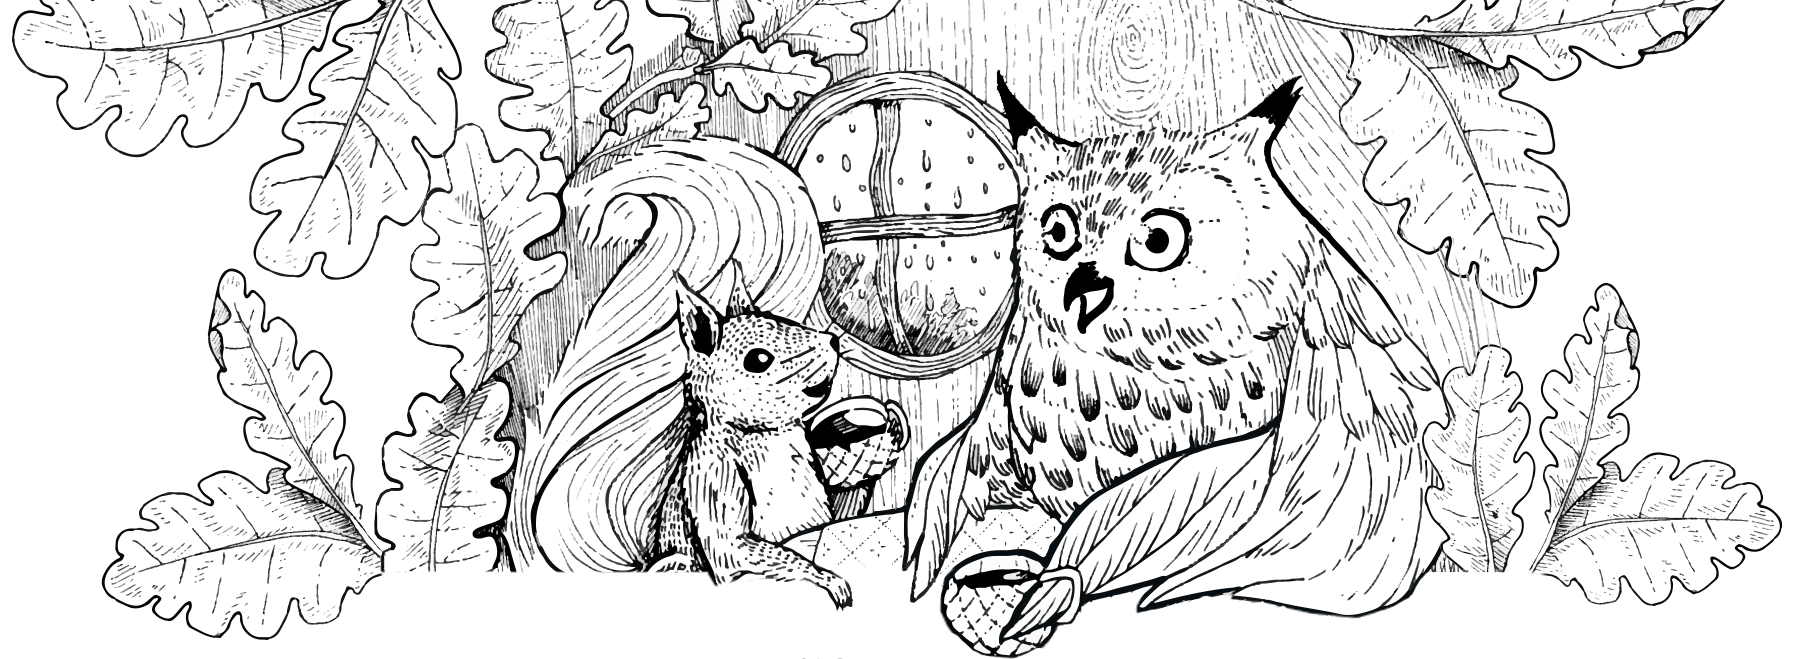 Squirrel and Owl conversing over tea